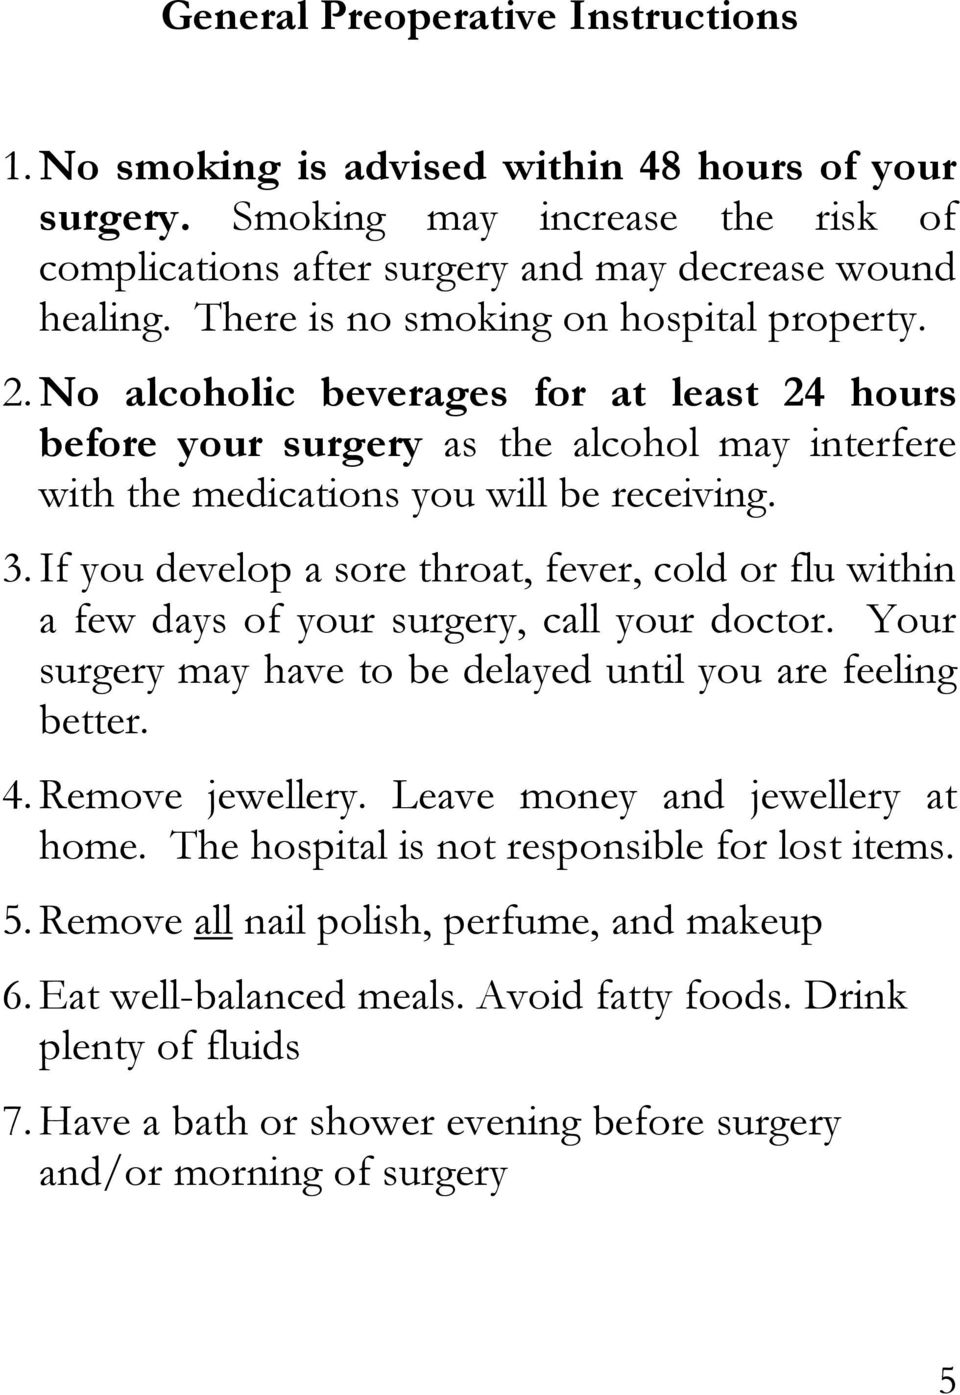 If you develop a sore throat, fever, cold or flu within a few days of your surgery, call your doctor. Your surgery may have to be delayed until you are feeling better. 4. Remove jewellery.